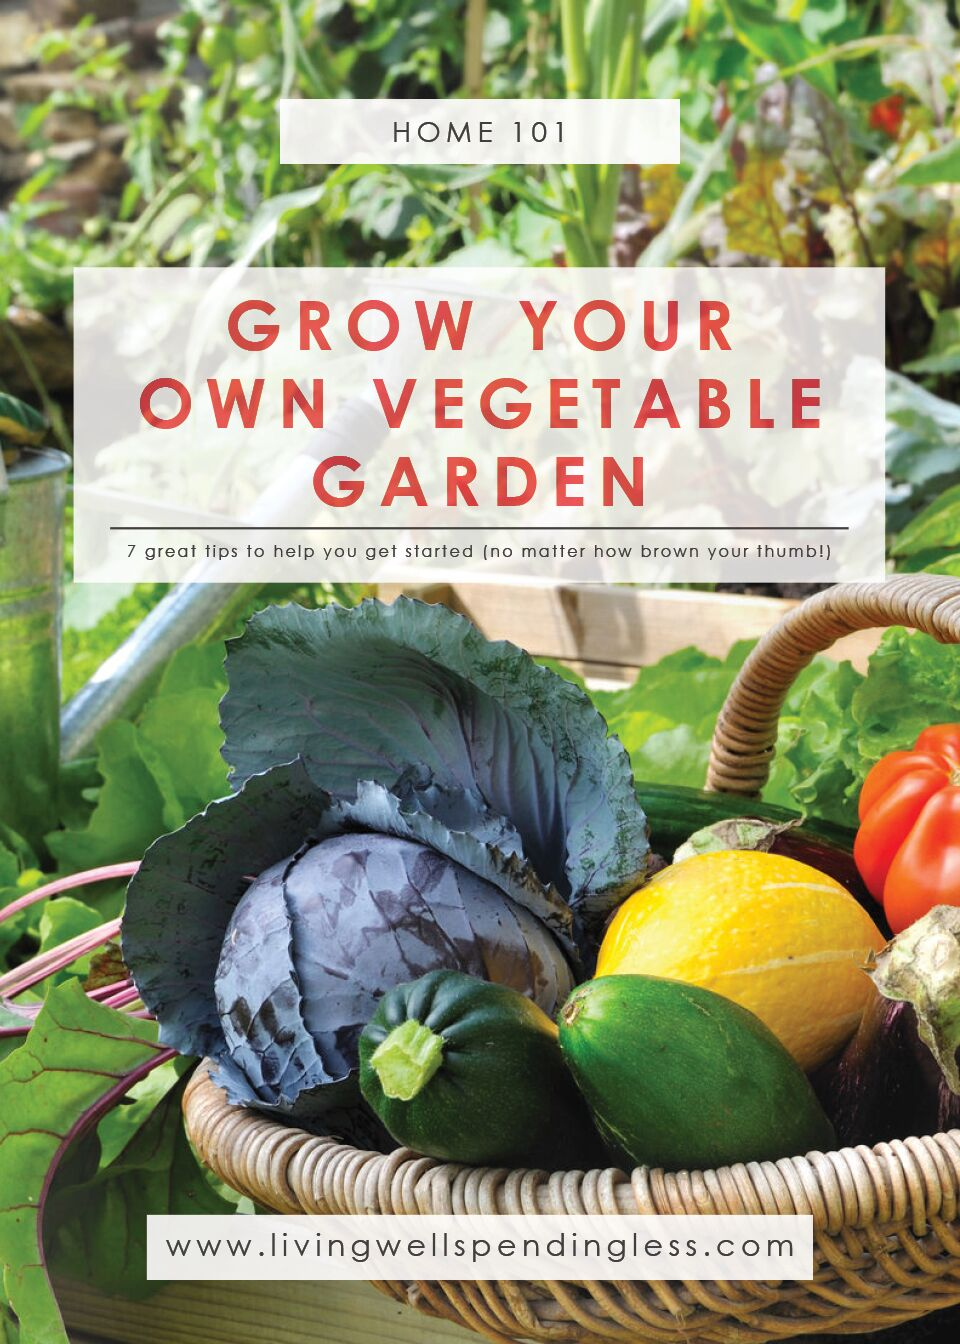 How to Grow a Vegetable Garden | Gardening 101 | Vegetable Gardening for Beginners | Growing Your Own - Vegetables